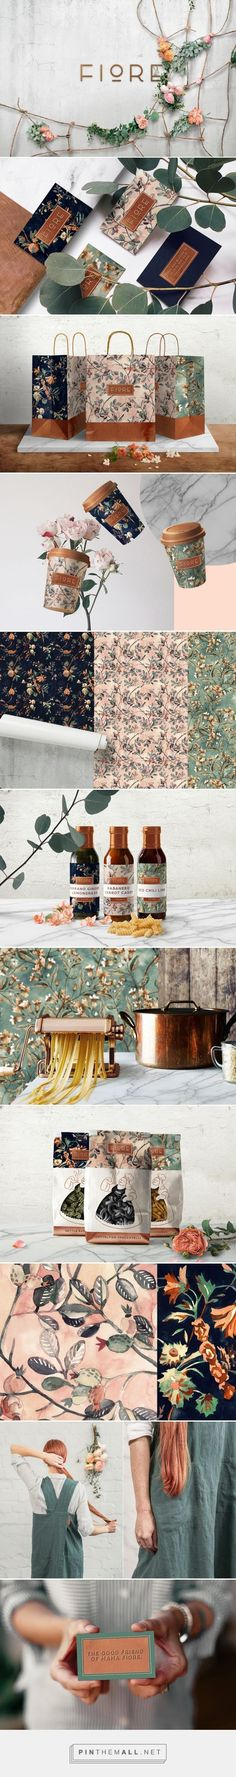 FIORE Italian Restaurant Branding by Noname Branding Fivestar Branding Agency – Design and Branding Agency & Curated Inspiration Gallery Site Web Design, Graphisches Design, Logo Design, Brand Identity Design, Graphic Design Branding, Design Agency, Typography Design, Creative Design, Floral Design